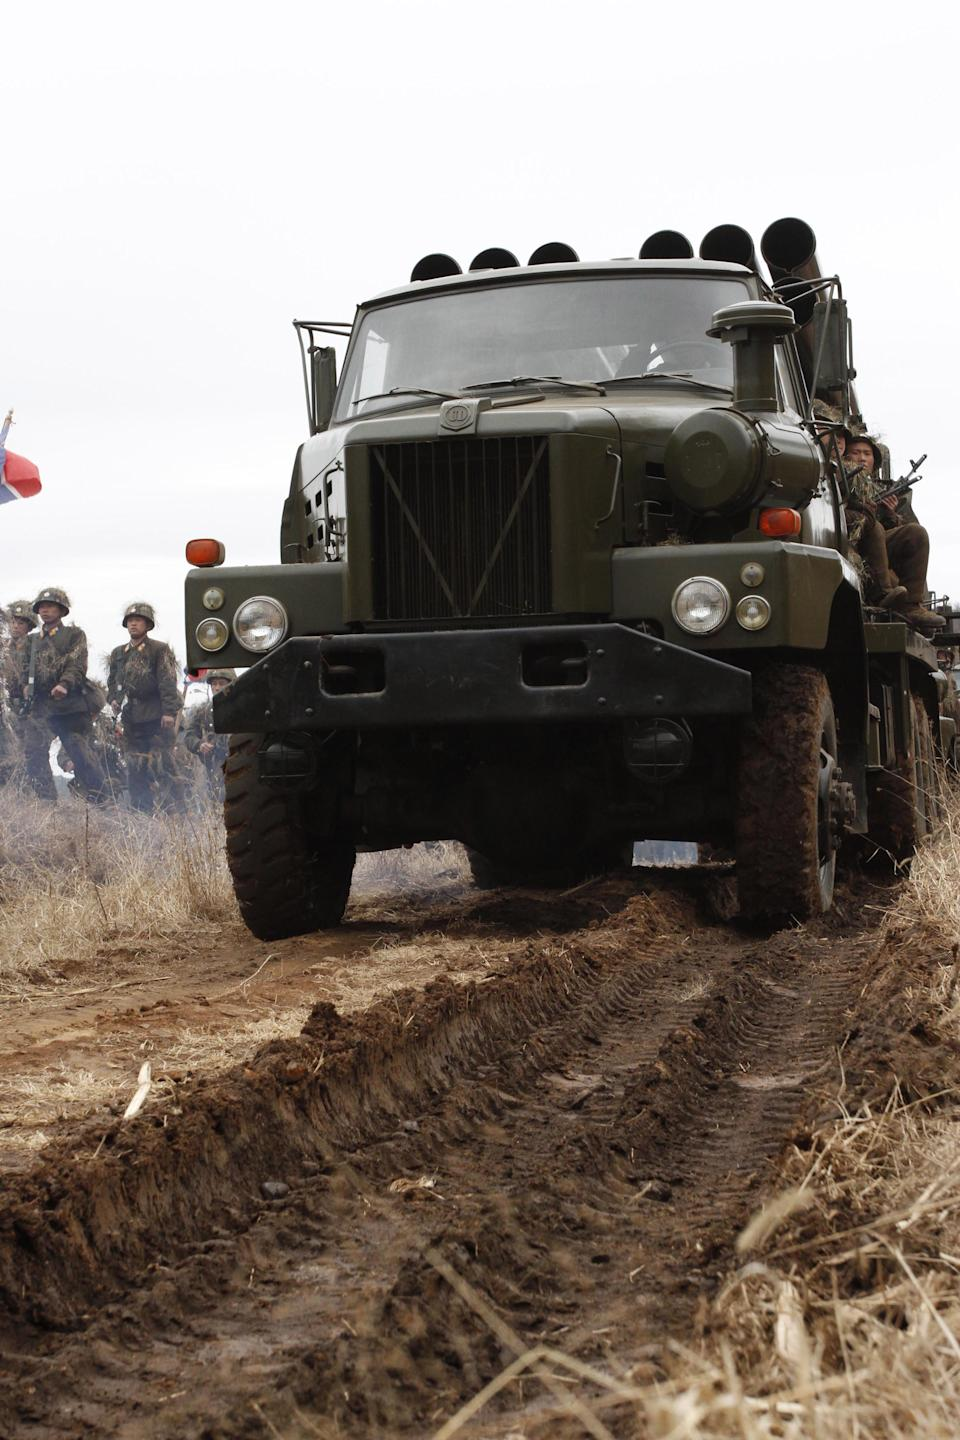 North Korean soldiers move vehicles and weapons during military exercises at a military base on North Korea's southwest coast, opposite South Korea's Baengnyeong Island Monday March 5, 2012. (AP Photo/Kim Kwang Hyon)